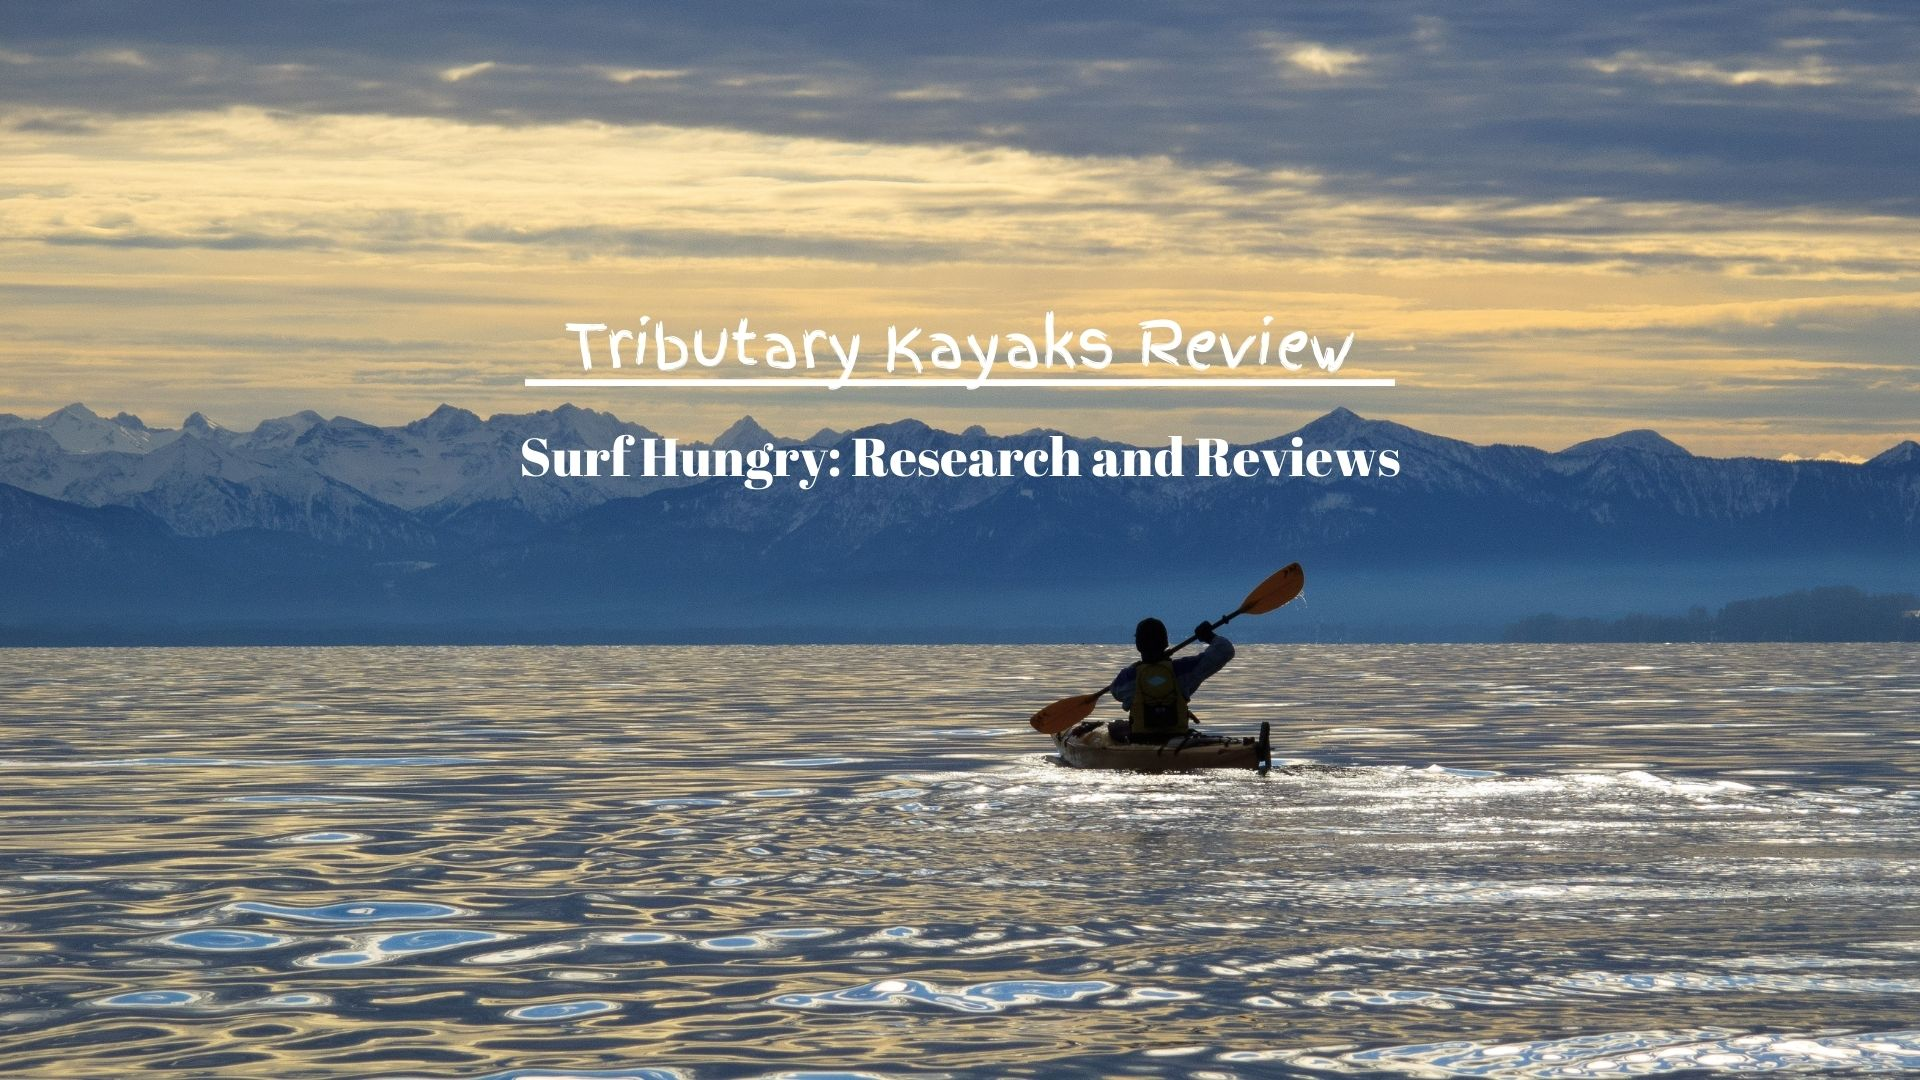 tributary kayaks review